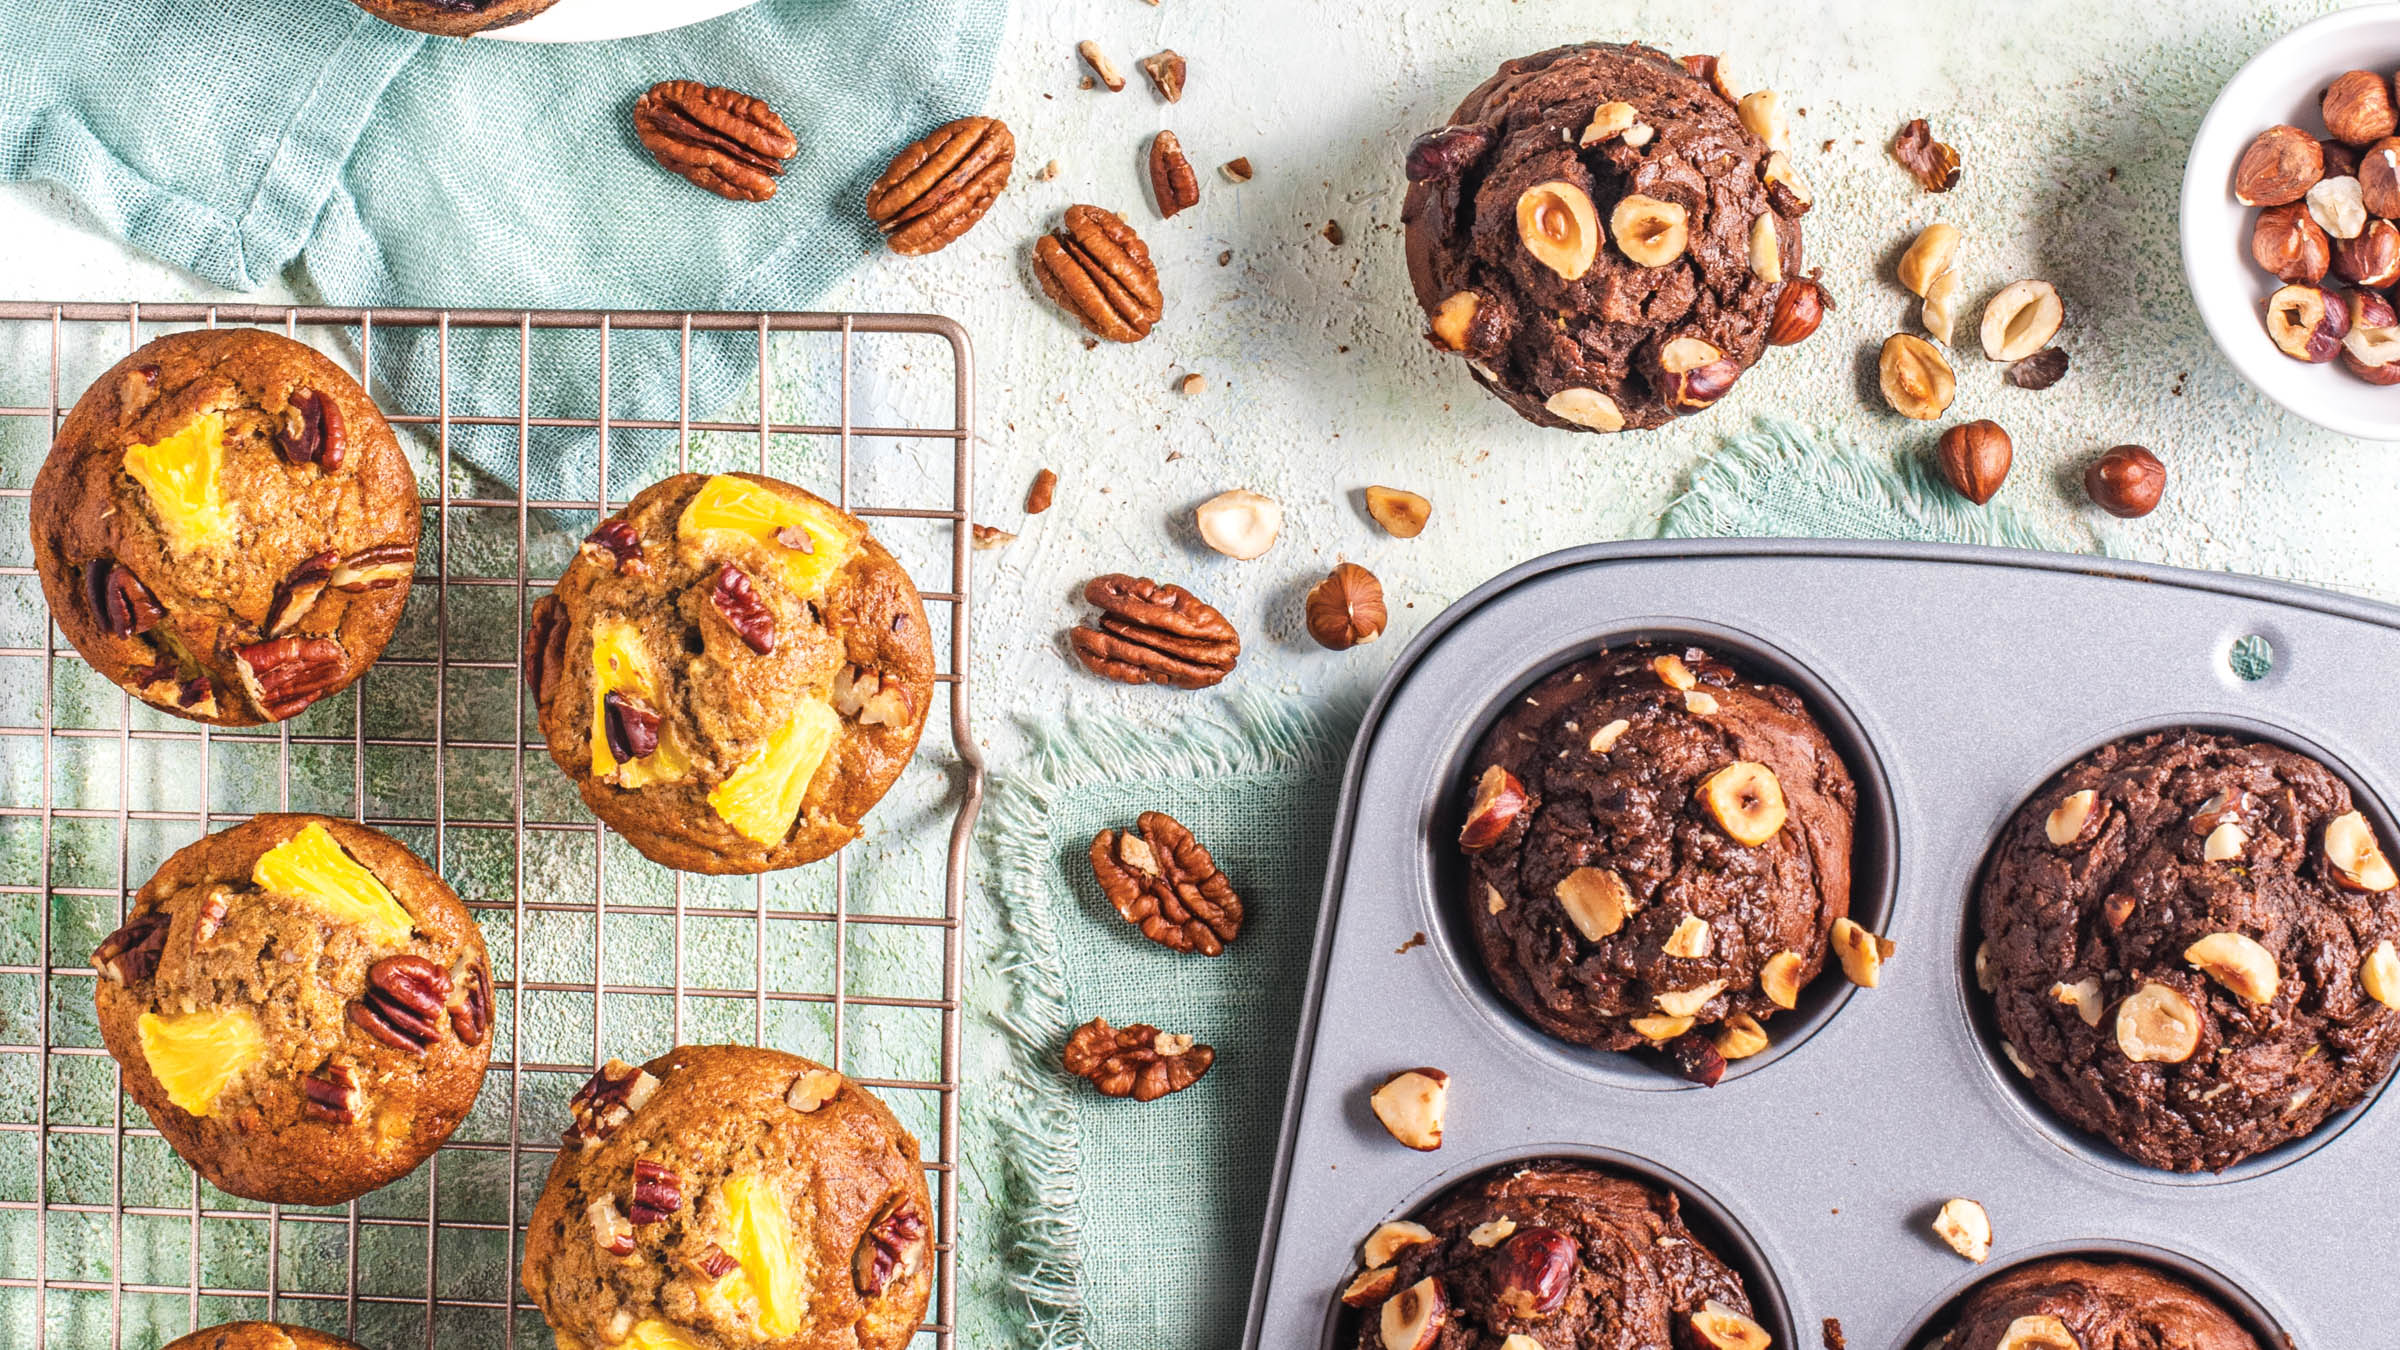 Breakfast On the Go Recipes: 3 Recipes for Energy